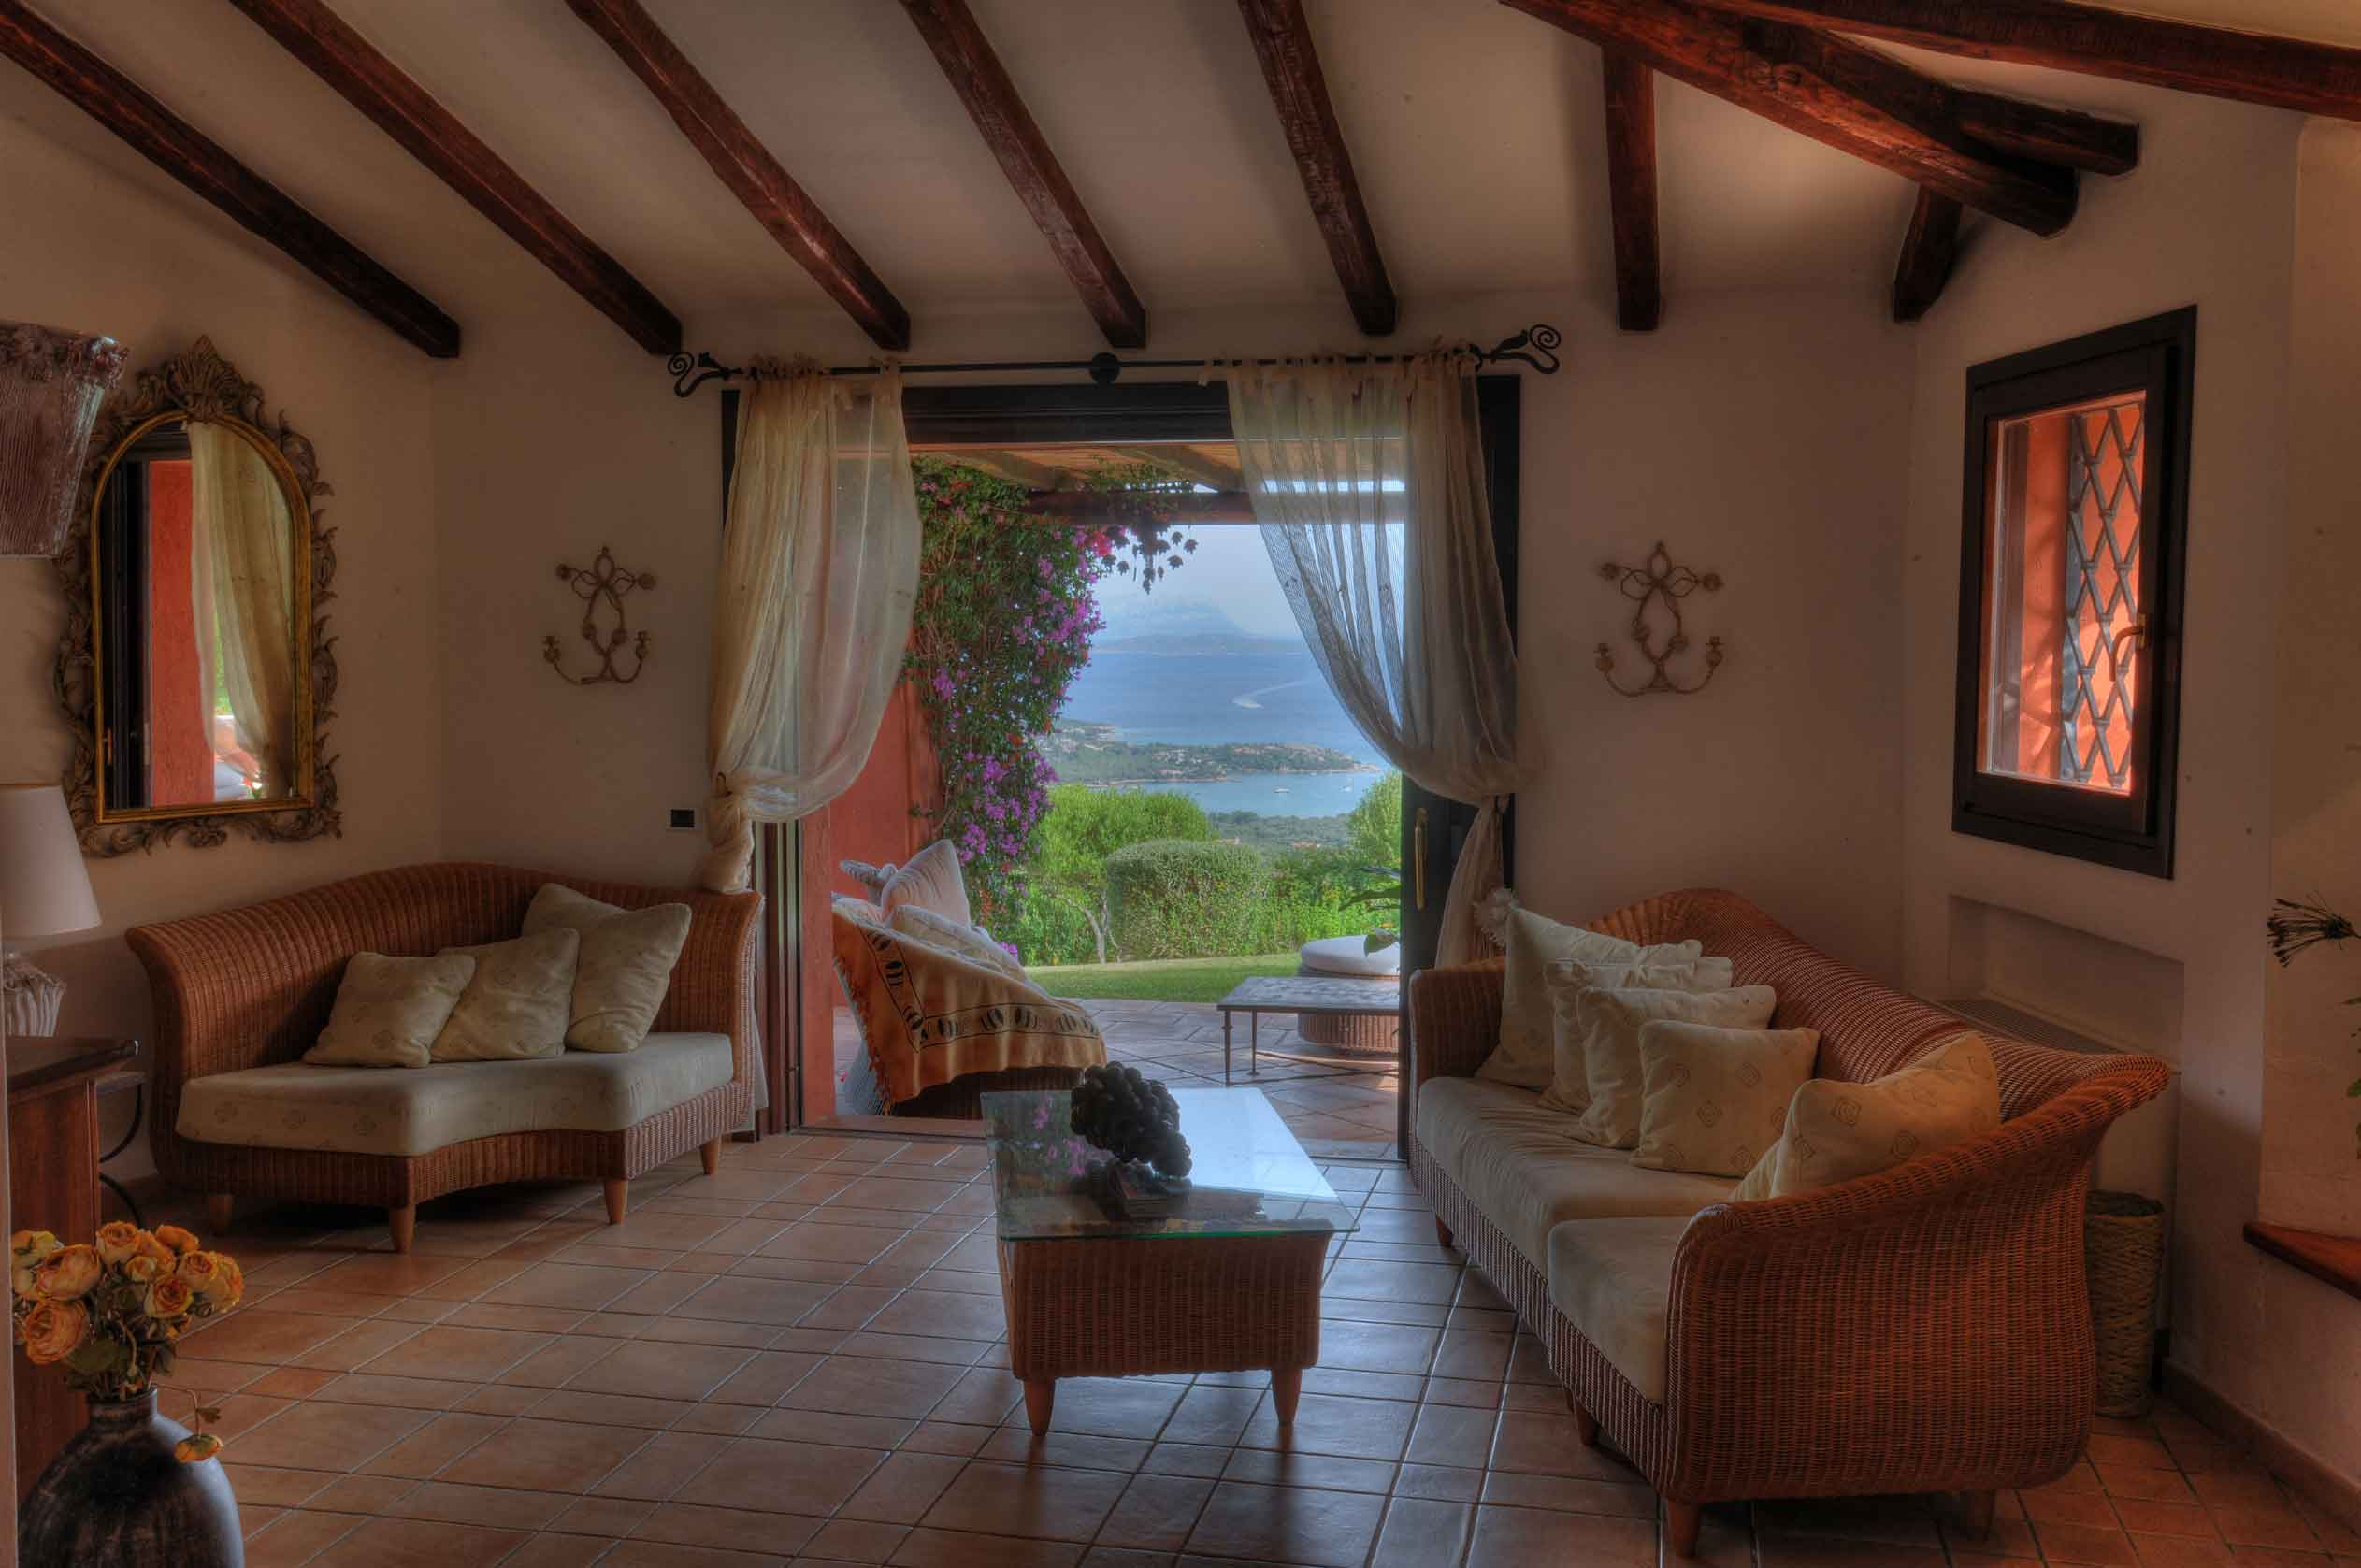 Villa Liccia enjoys a prized location on the grounds of the prestigious Pevero Golf Club, home to the championship course designed by the late American golf architect Robert Trent Jones.